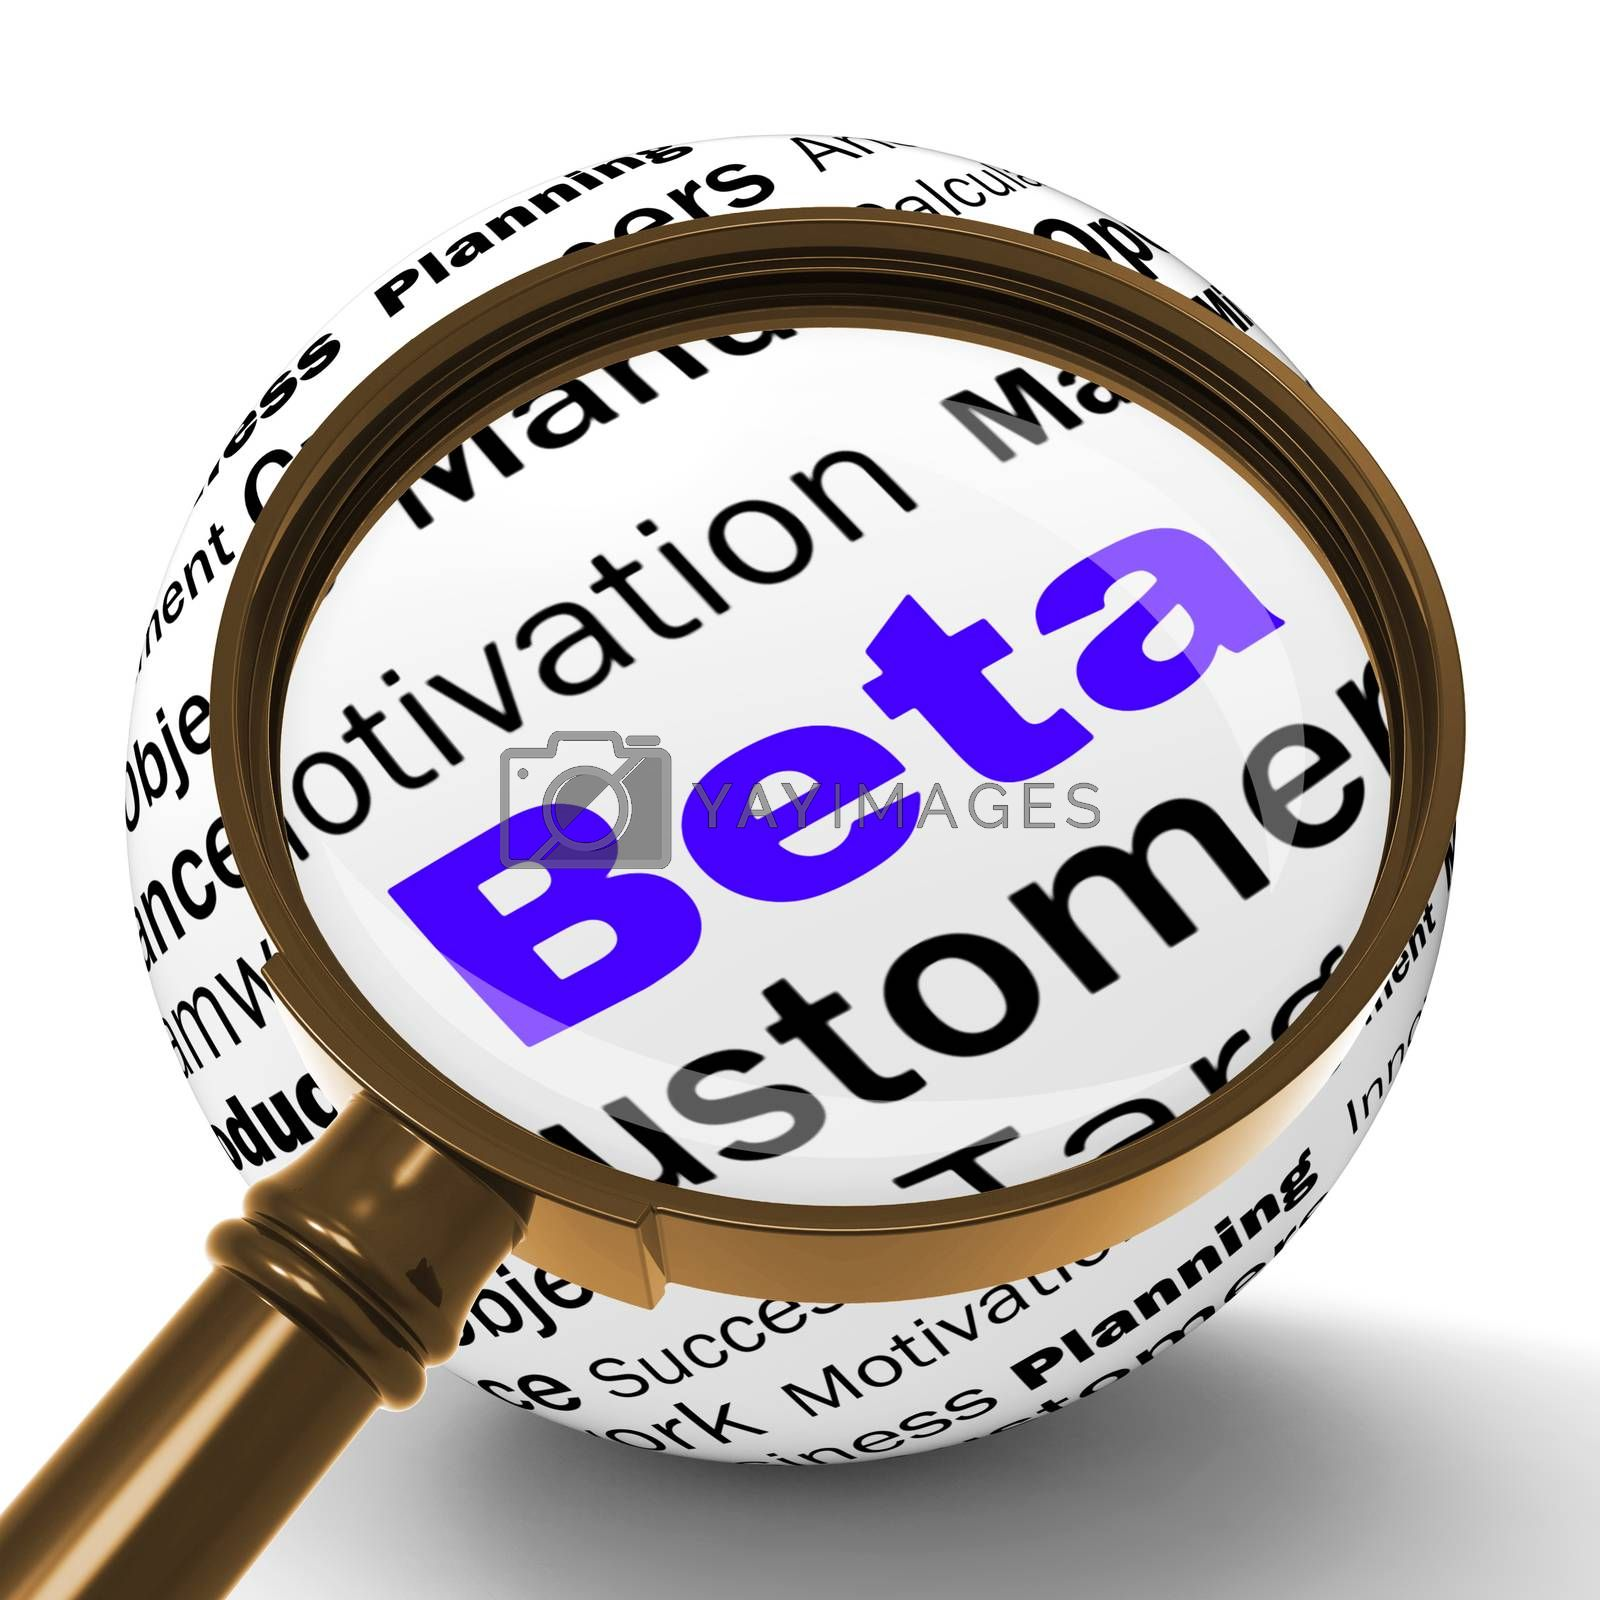 Beta Magnifier Definition Shows Trial Version Or Testing by stuartmiles